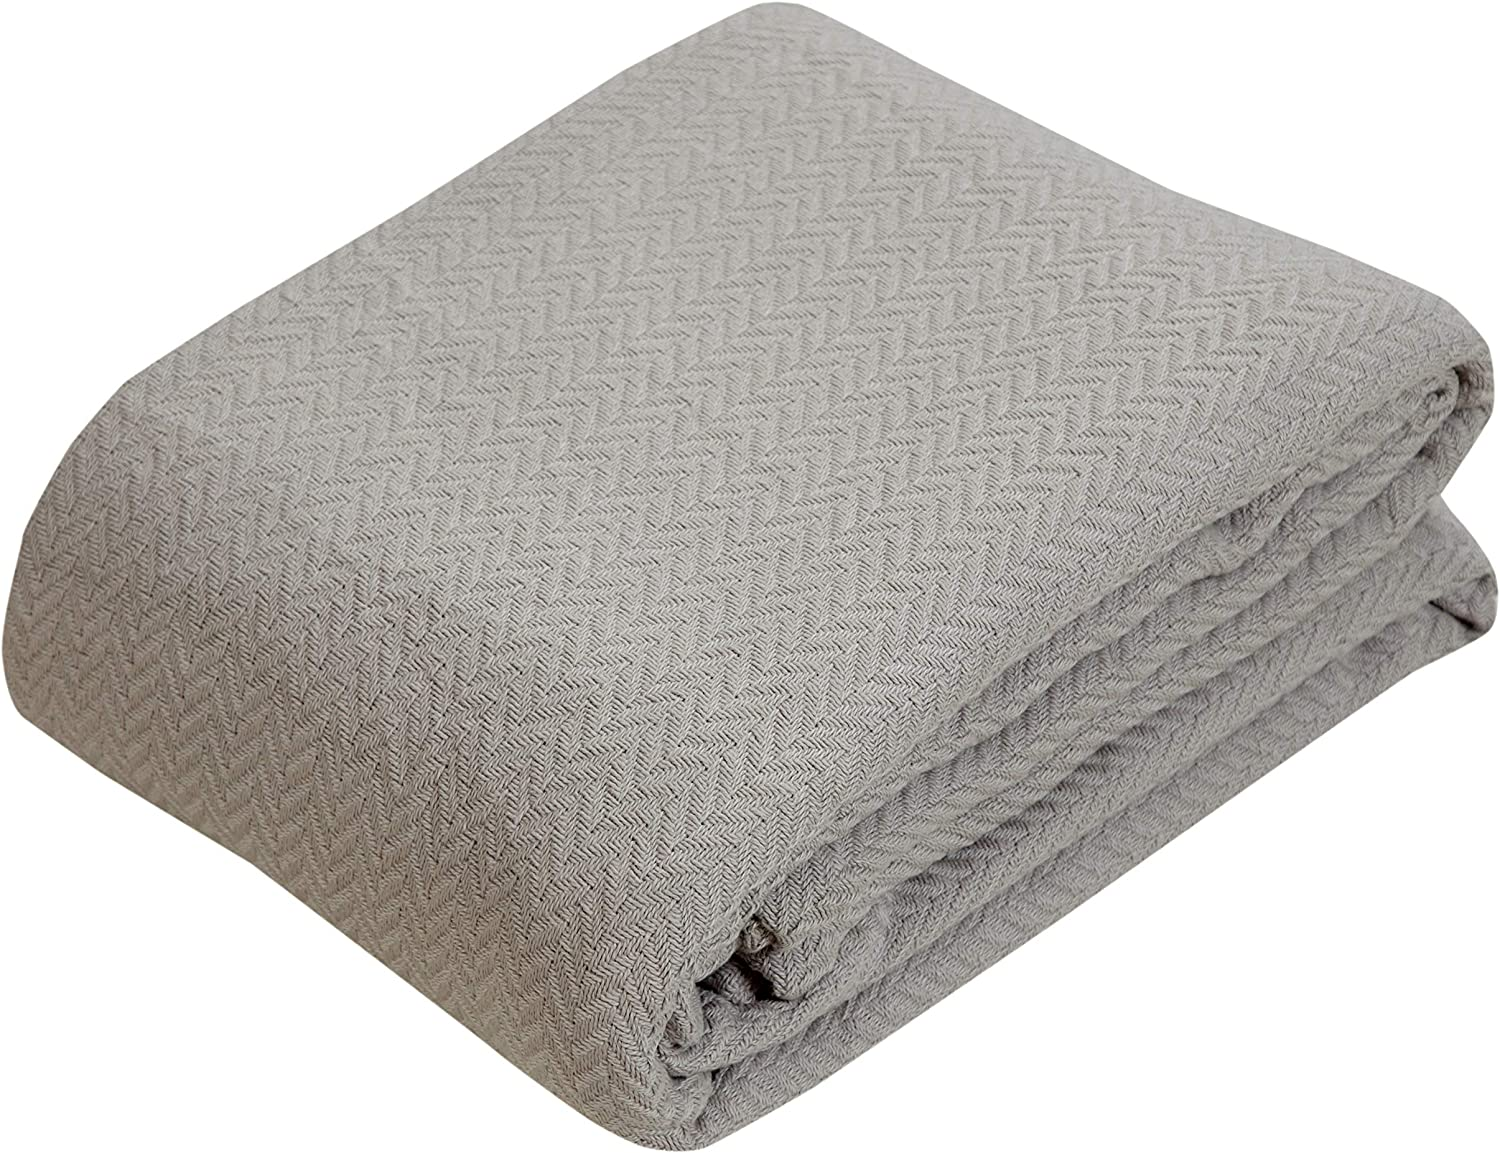 100% Soft Premium Ringspun Cotton Thermal Blanket - Full/Queen - Dark Brown - Snuggle in These Super Soft Cozy Cotton Blankets - Perfect for Layering Any Bed - Provides Comfort and Warmth for Years: Kitchen & Dining